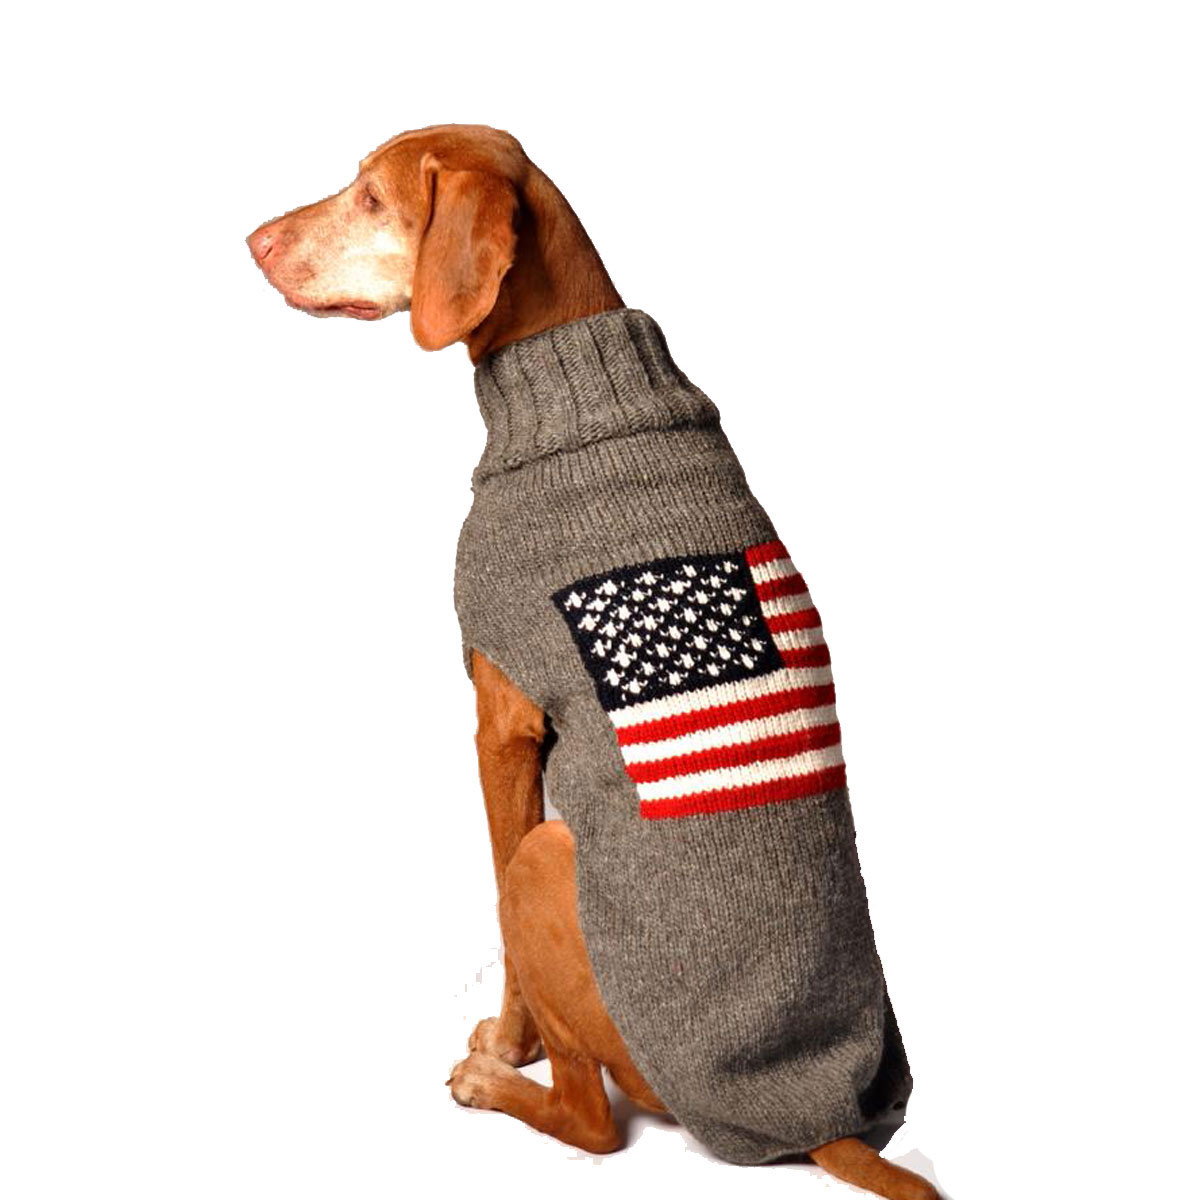 how to make a sweater for a large dog